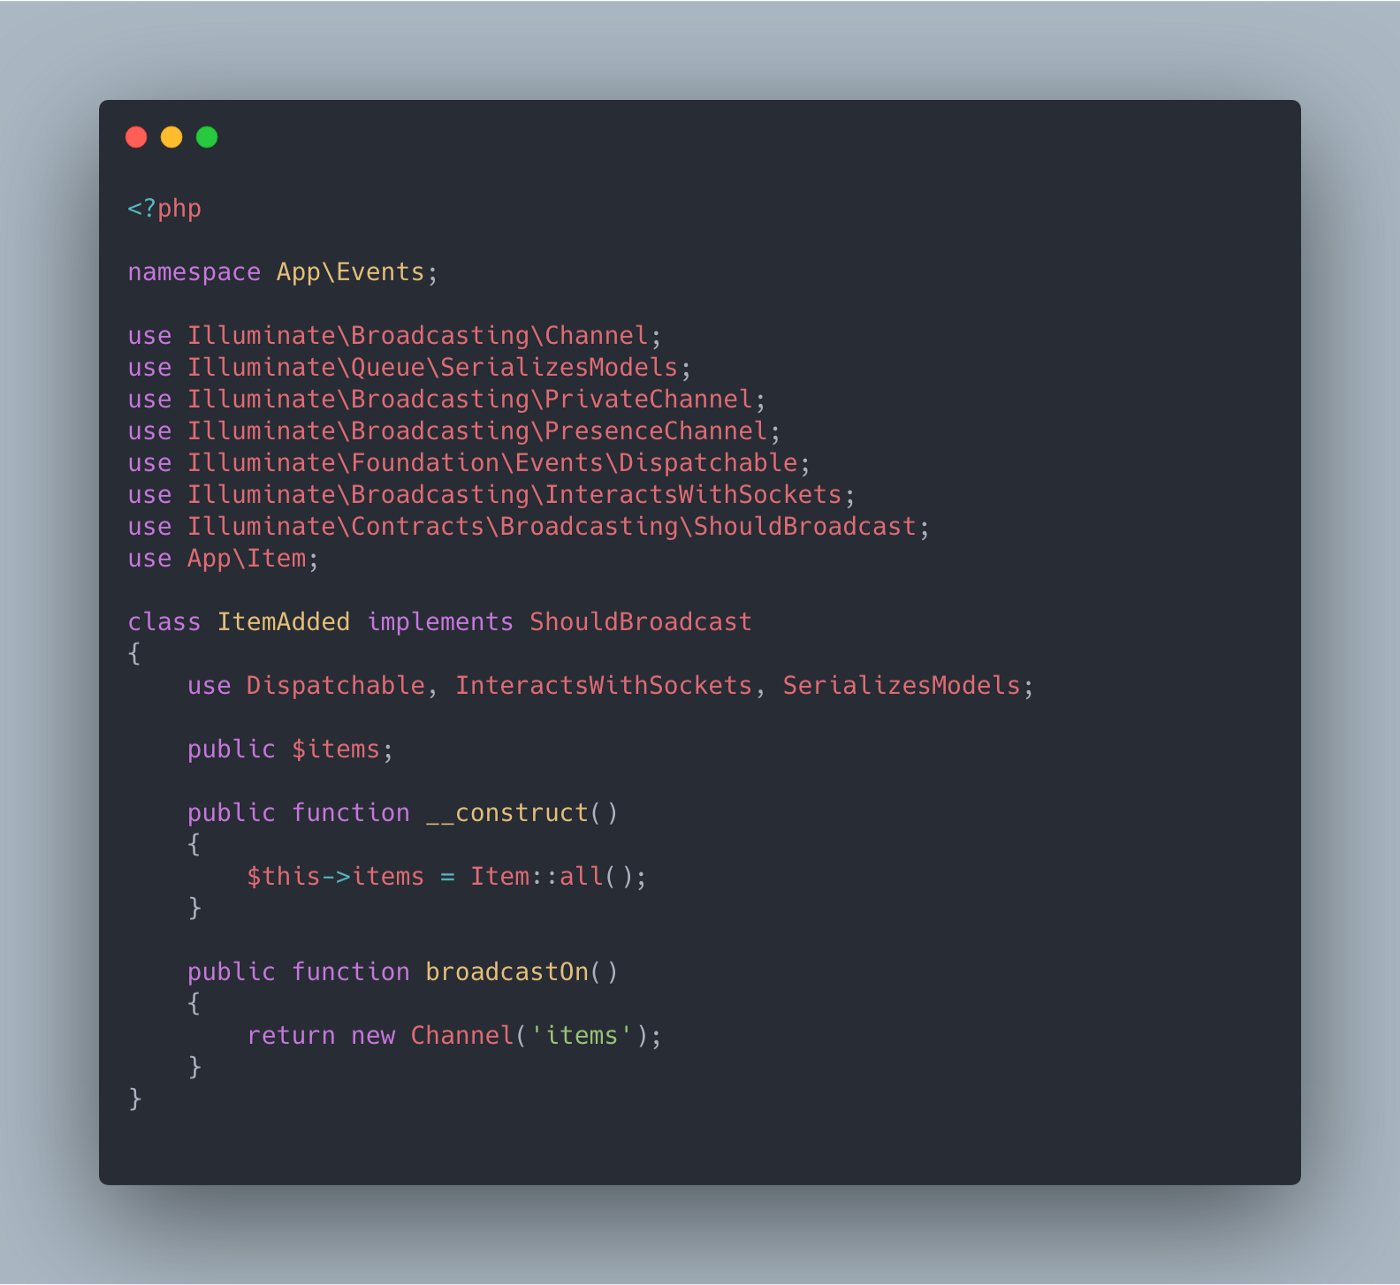 Code screenshot of an example Event in a Laravel app